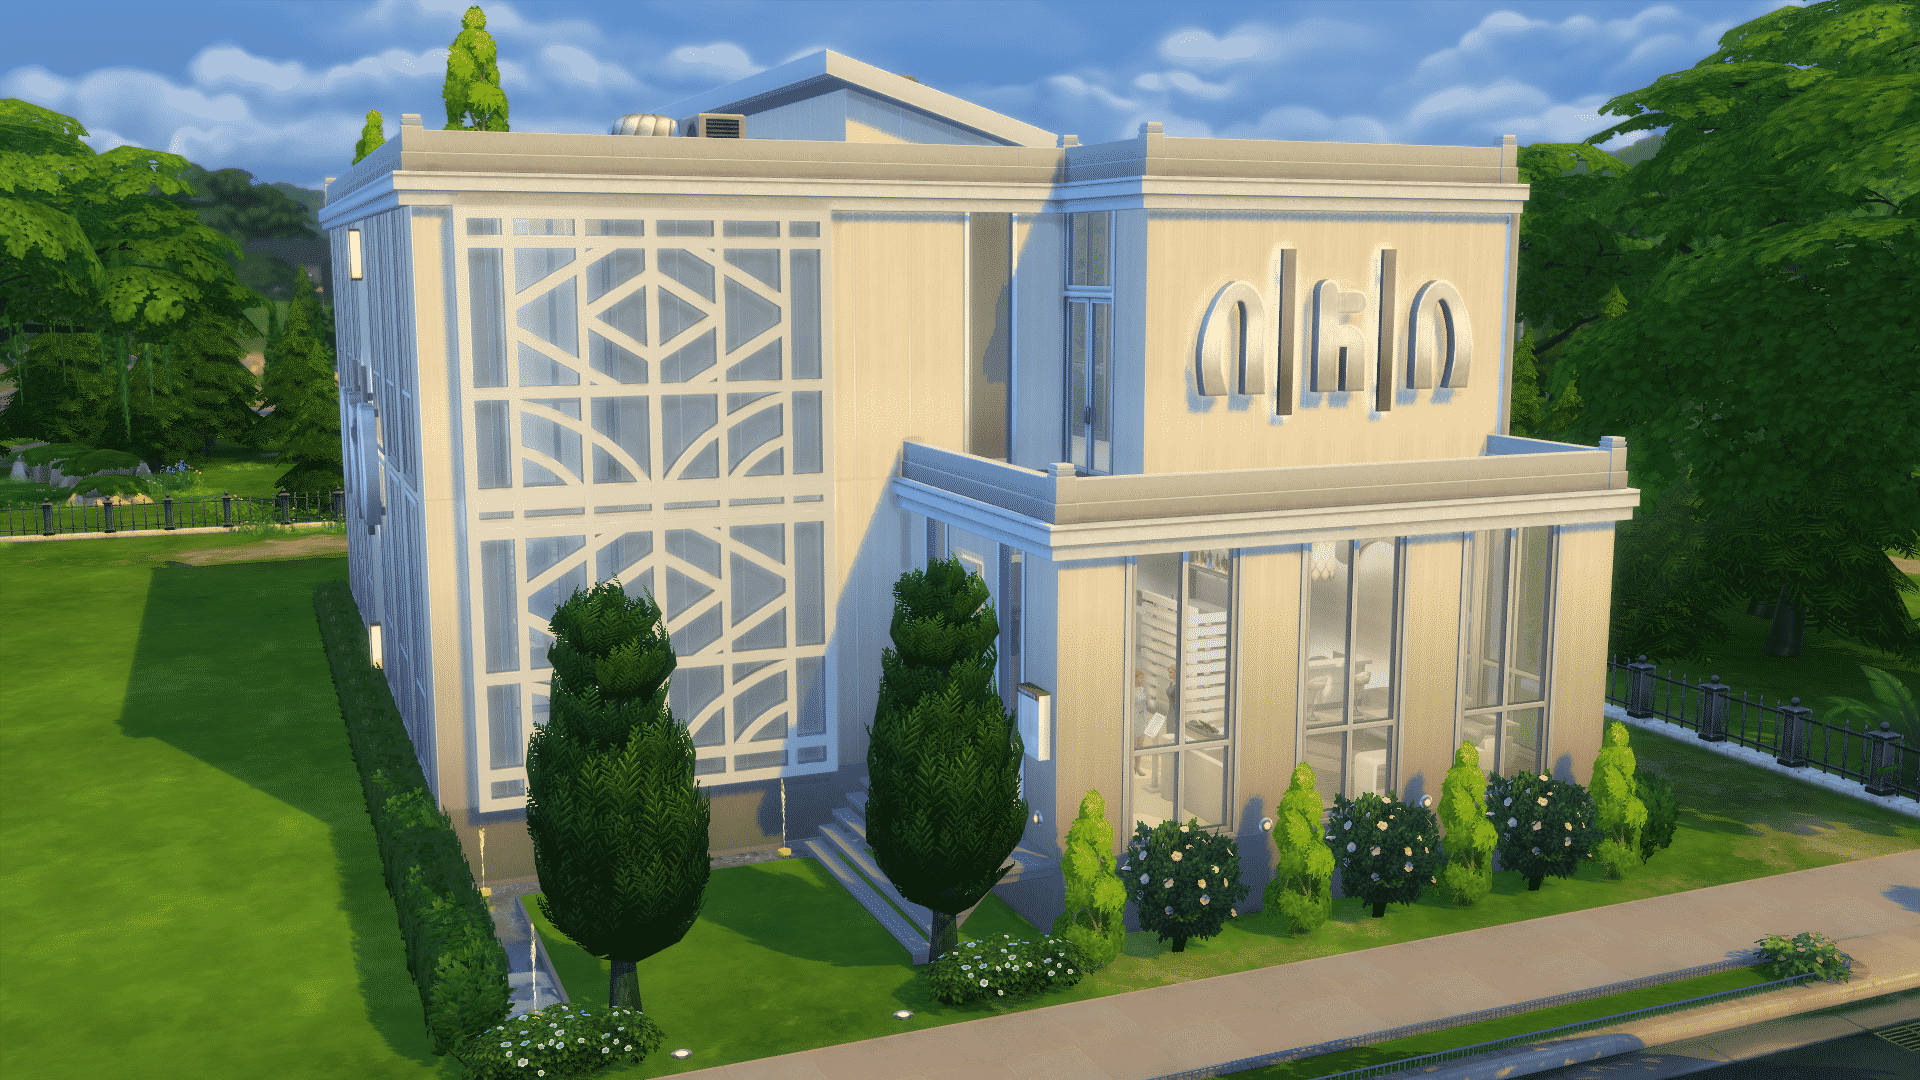 The Sims 4 Dine Out: Venues Interactive Overview